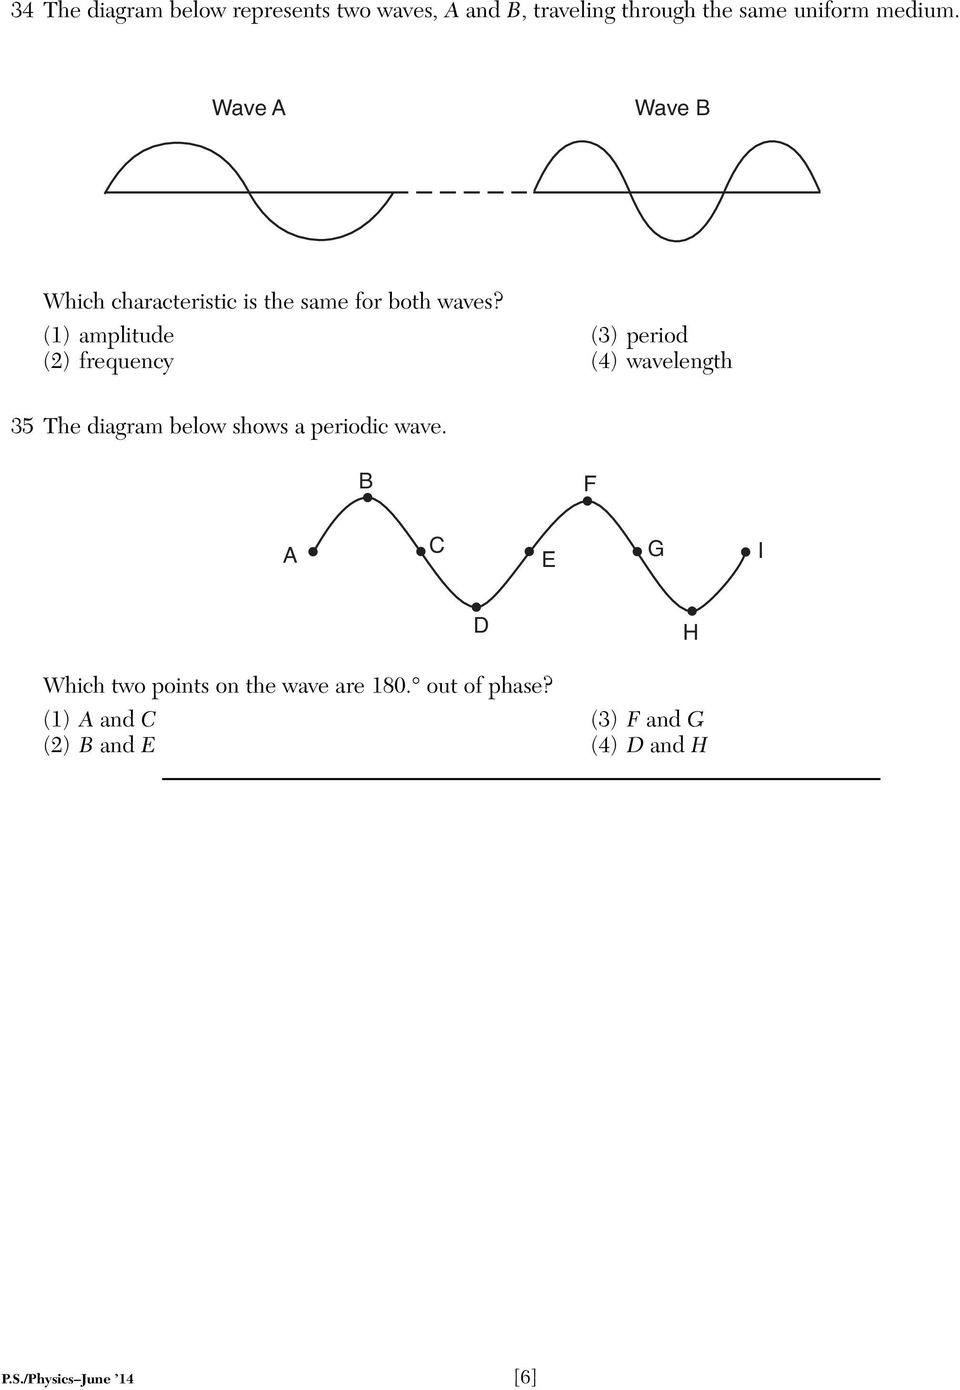 (1) amplitude (3) period (2) frequency (4) wavelength 35 The diagram below shows a periodic